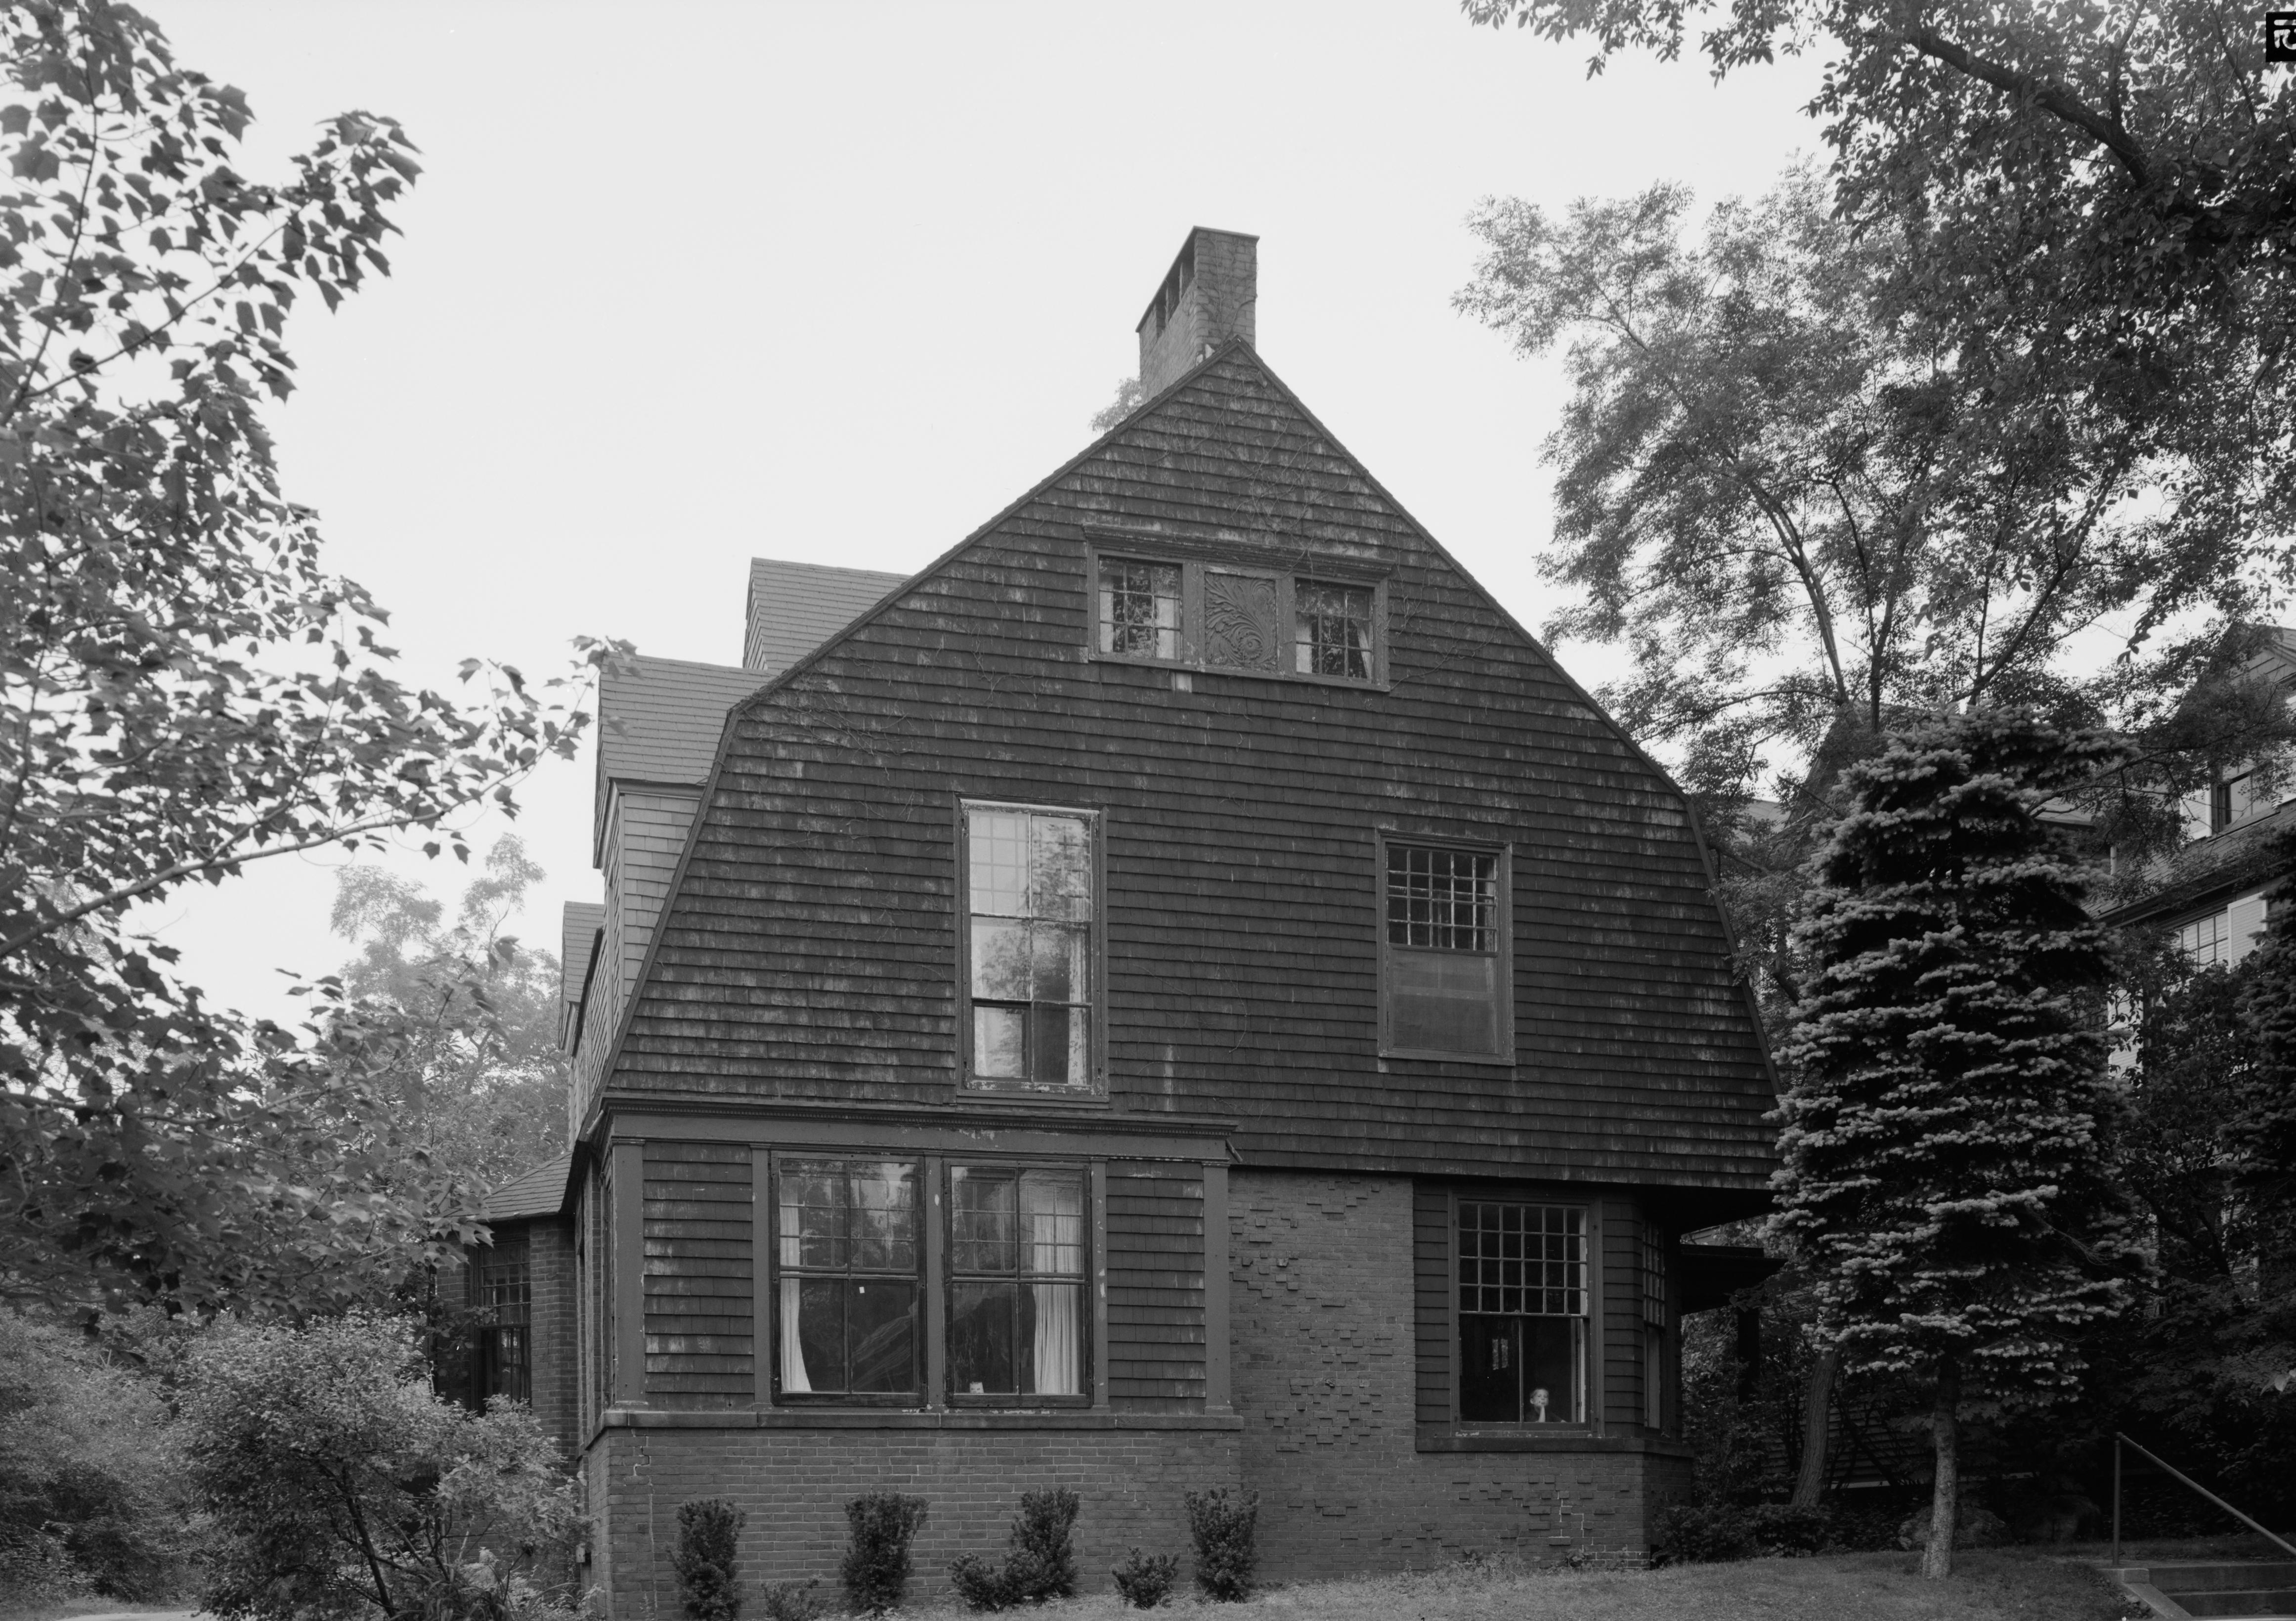 Public domain photograph of the John Calvin Stevens House, Provided by the Library of Congress, Prints and Photograph Division